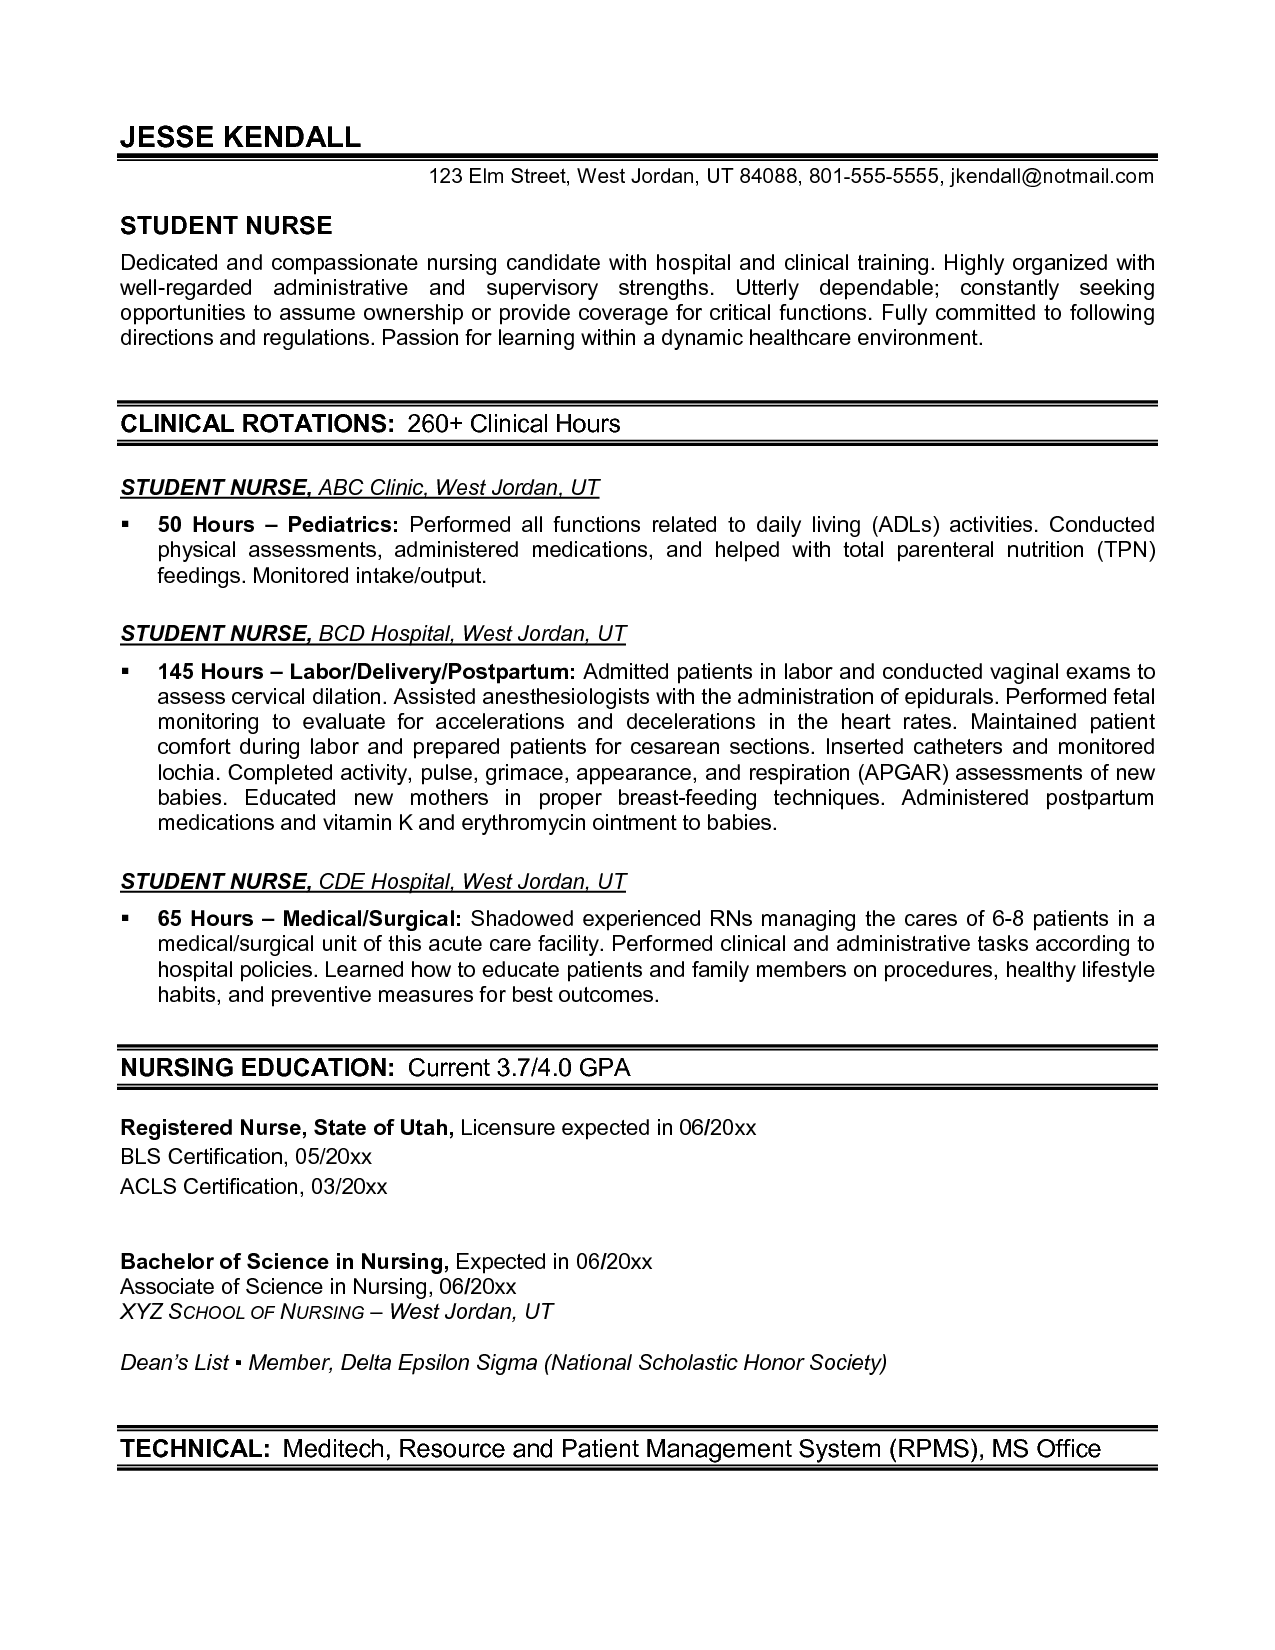 Resumes Examples Resume Template Nursing  Nursing  Pinterest  Nursing Resume